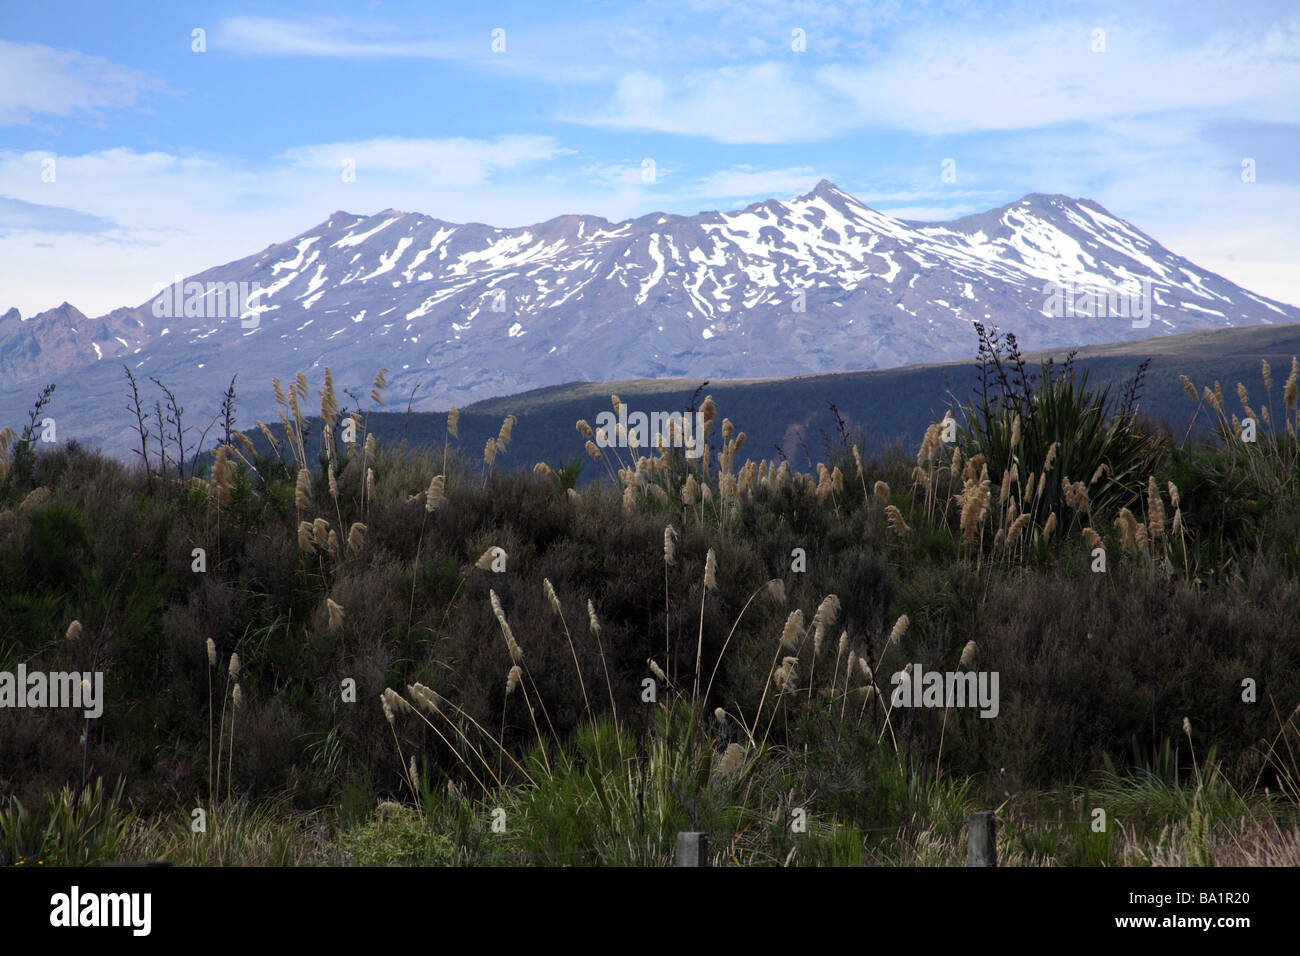 Mount Ruapahu from the overlander newzealand - Stock Image